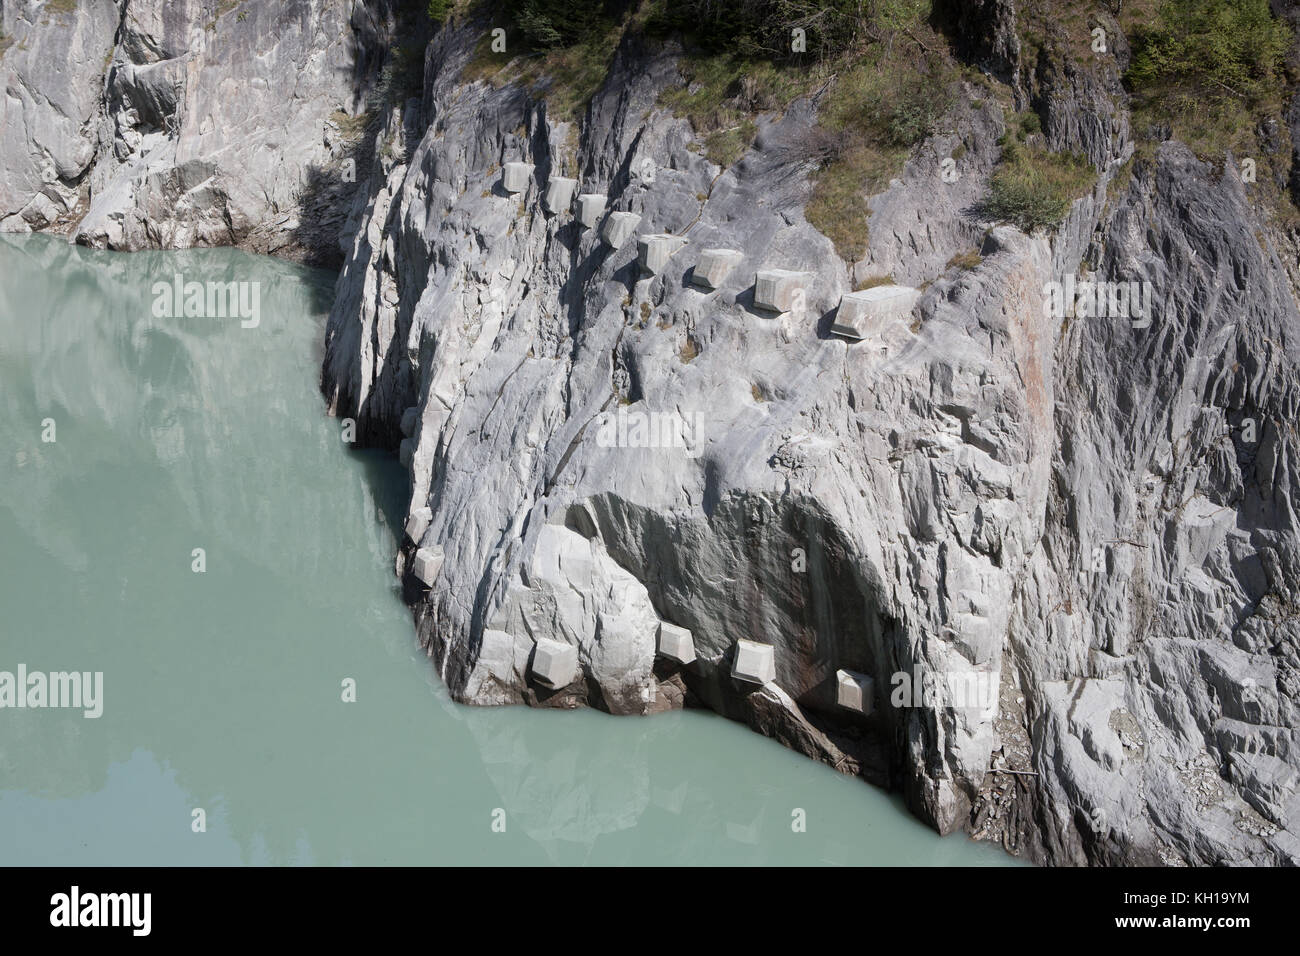 Geologic engineering: Reinforced mountain wall above a lake by using shotcrete and rock bolts as slope stabilization. - Stock Image